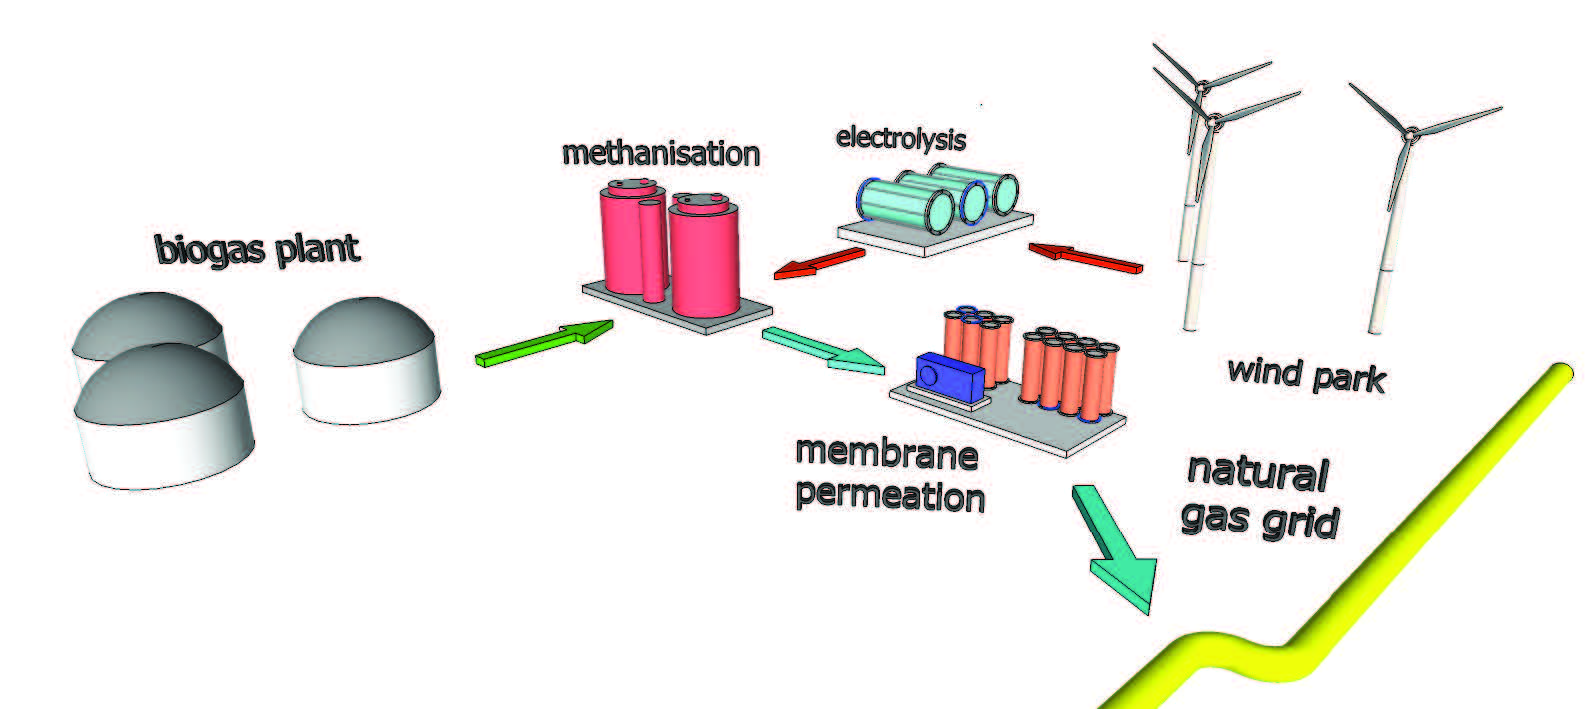 Invention Store Combined Biogas Upgrading Power To Gas Energy Storage Plant Diagram Images Videos